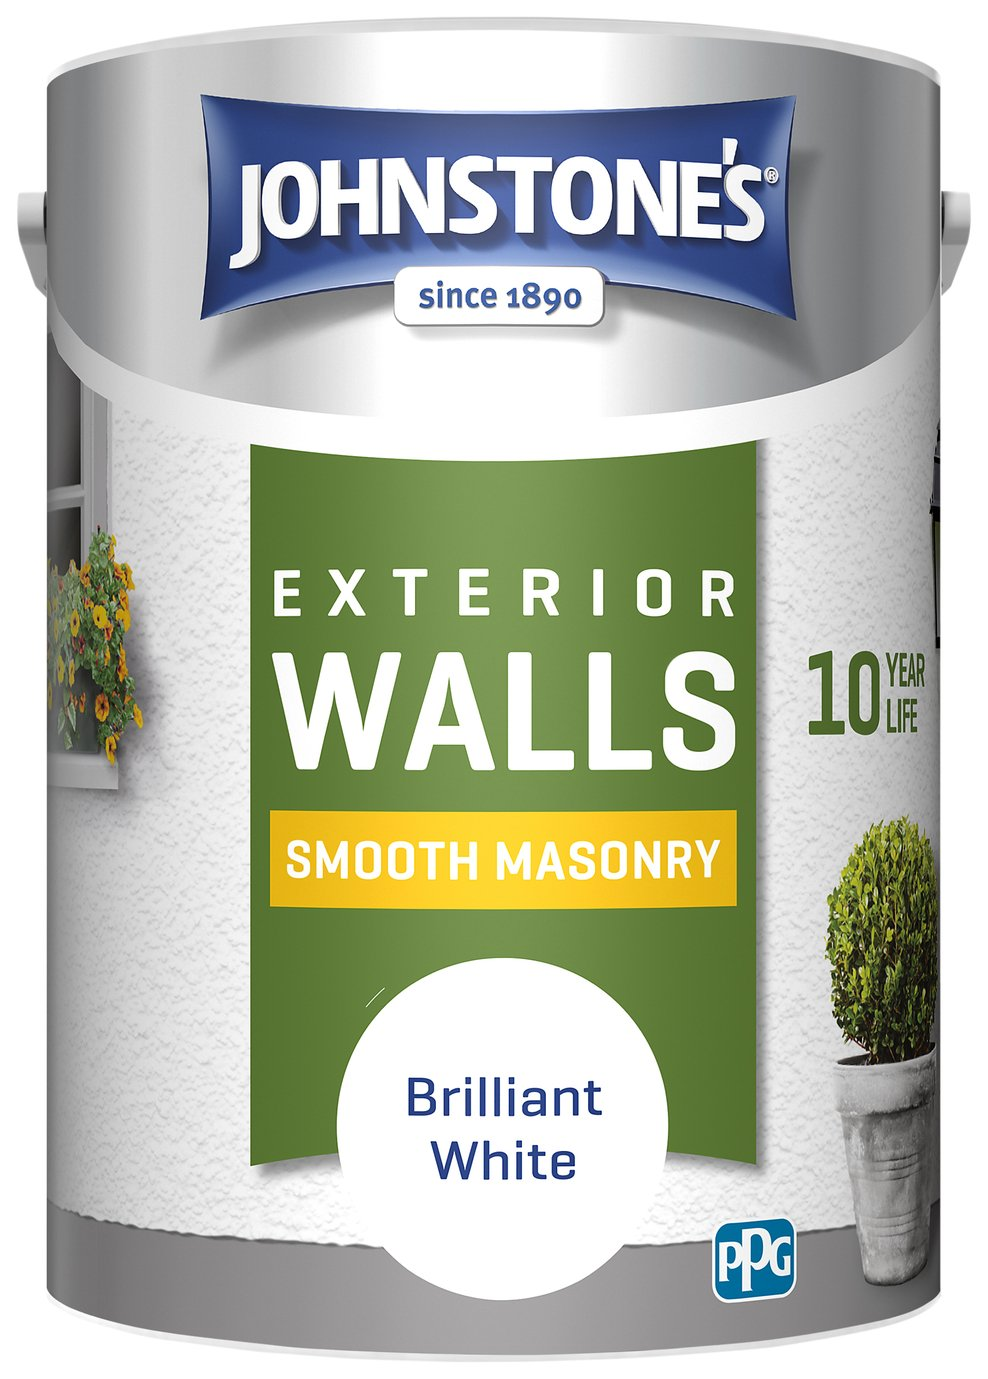 Johnstones Masonry Paint 5L - White